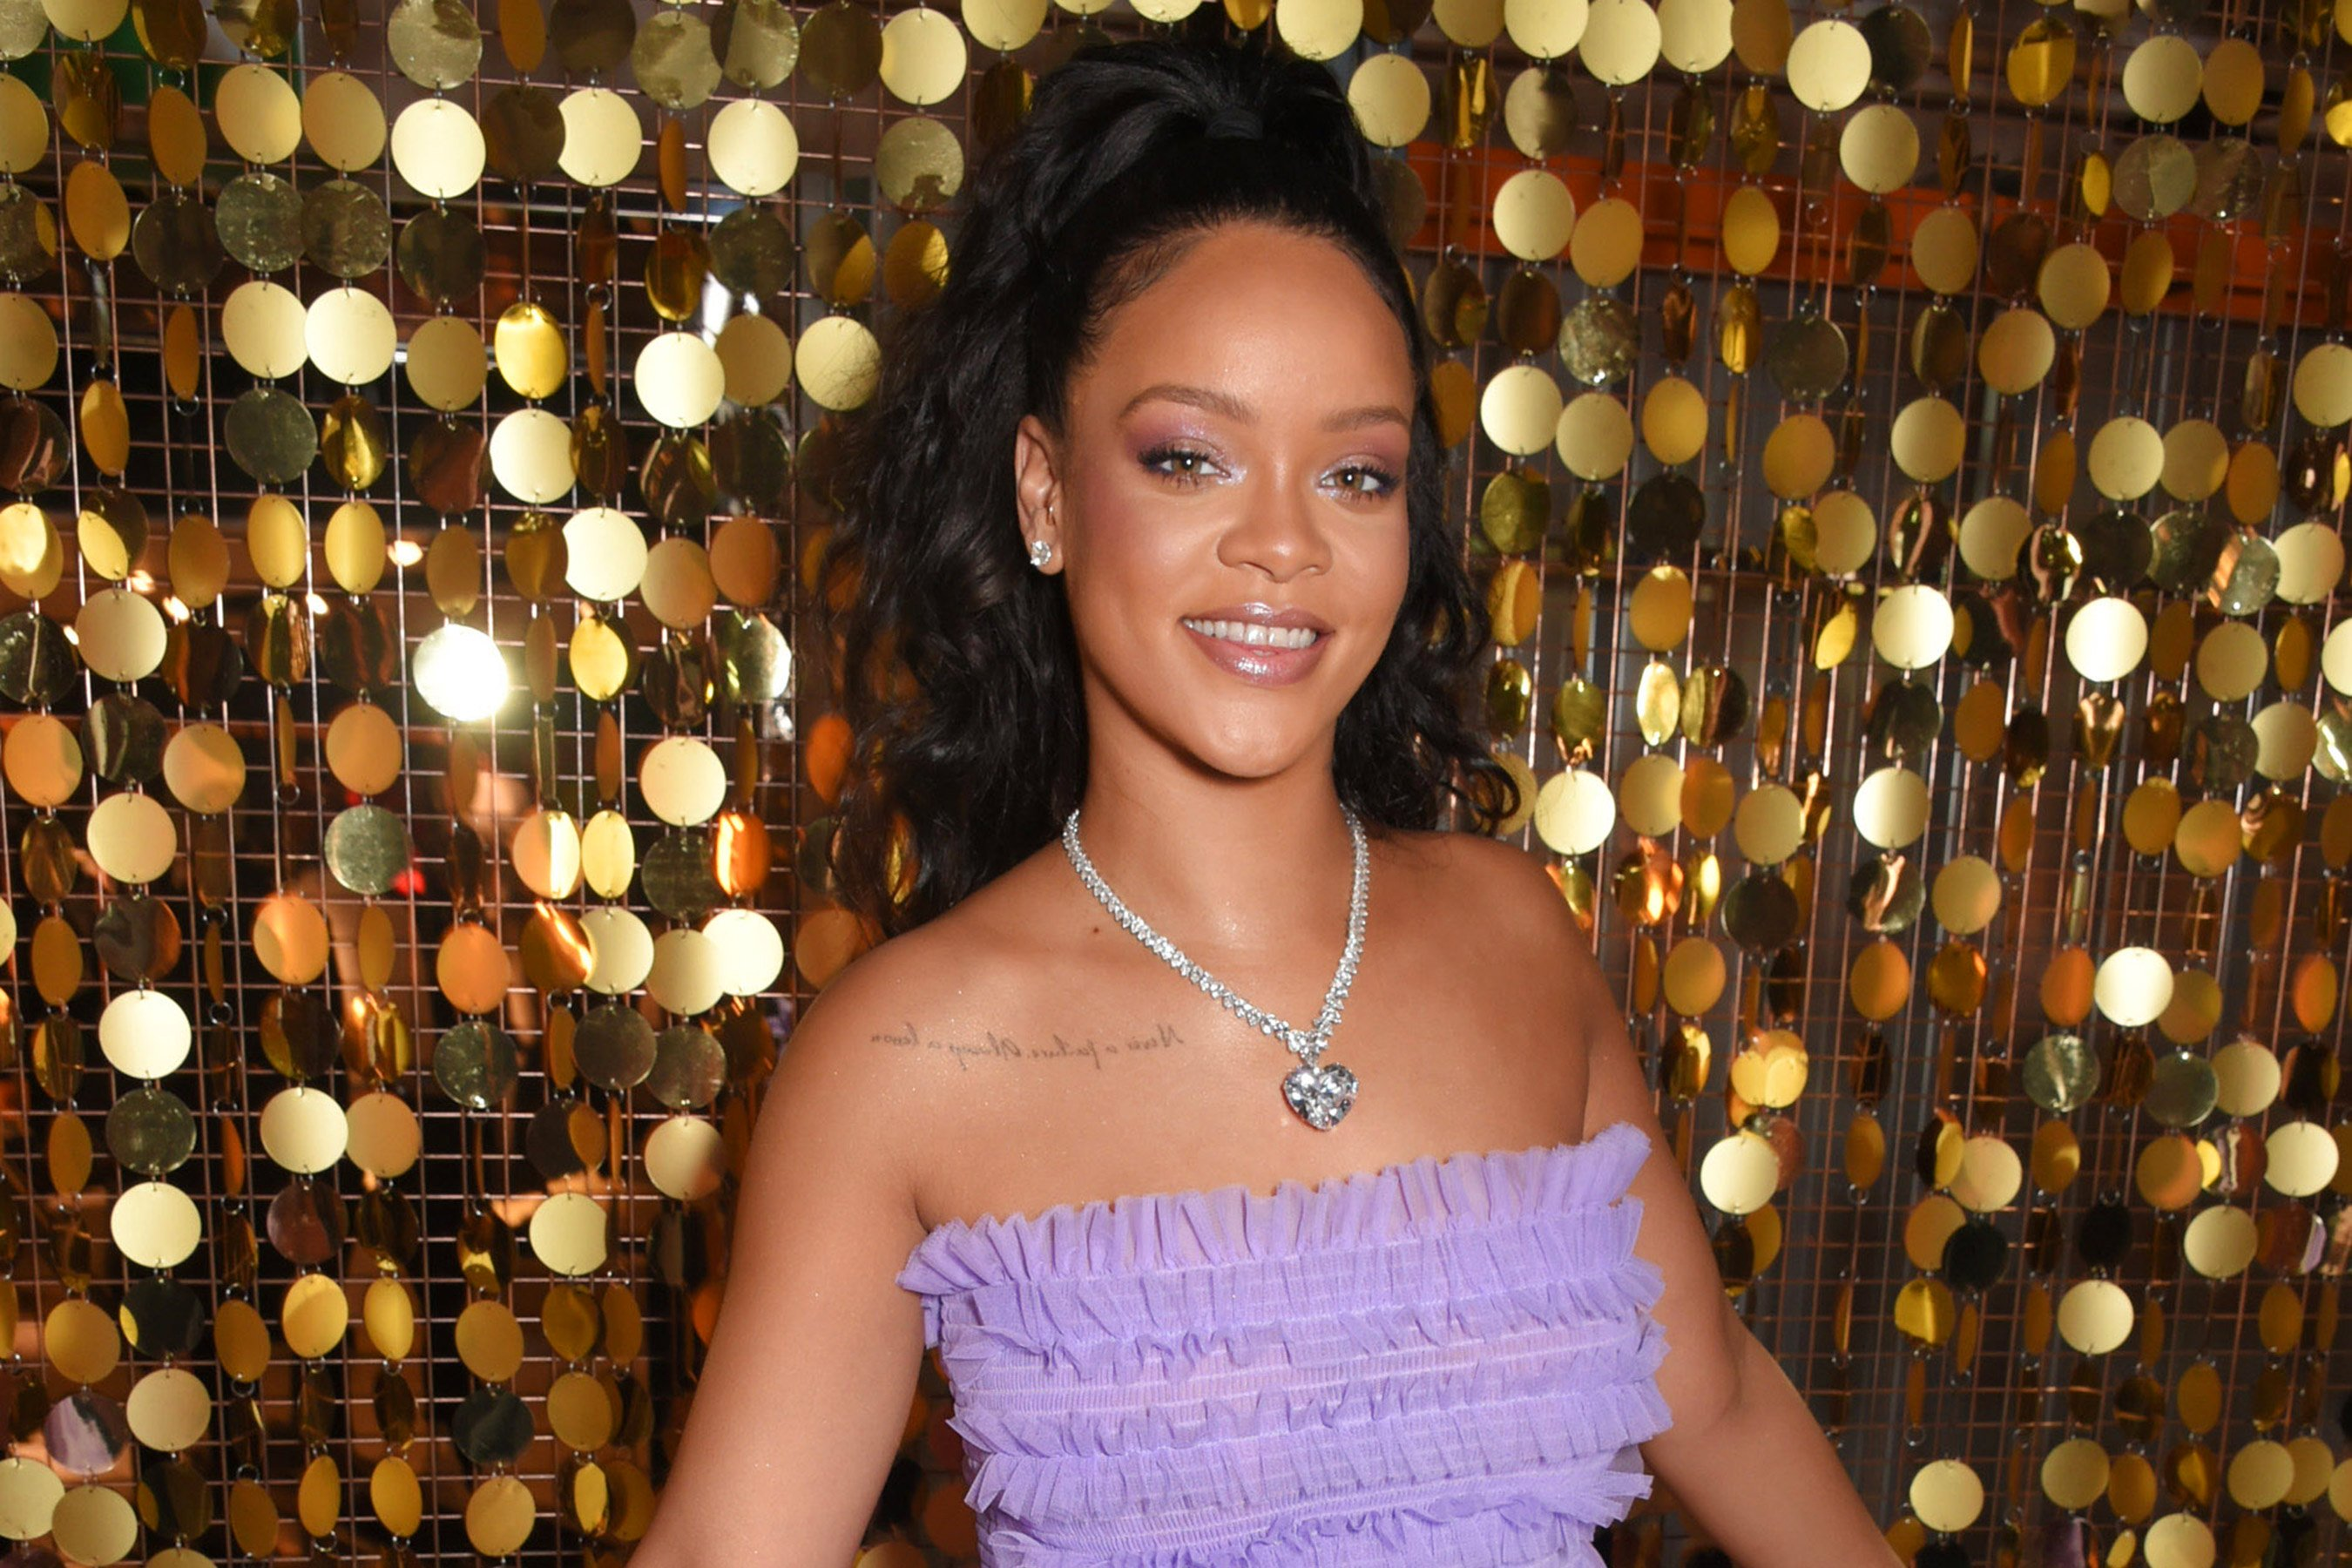 Rihanna to perform with DJ Khaled and Bryson Tiller at the Grammys